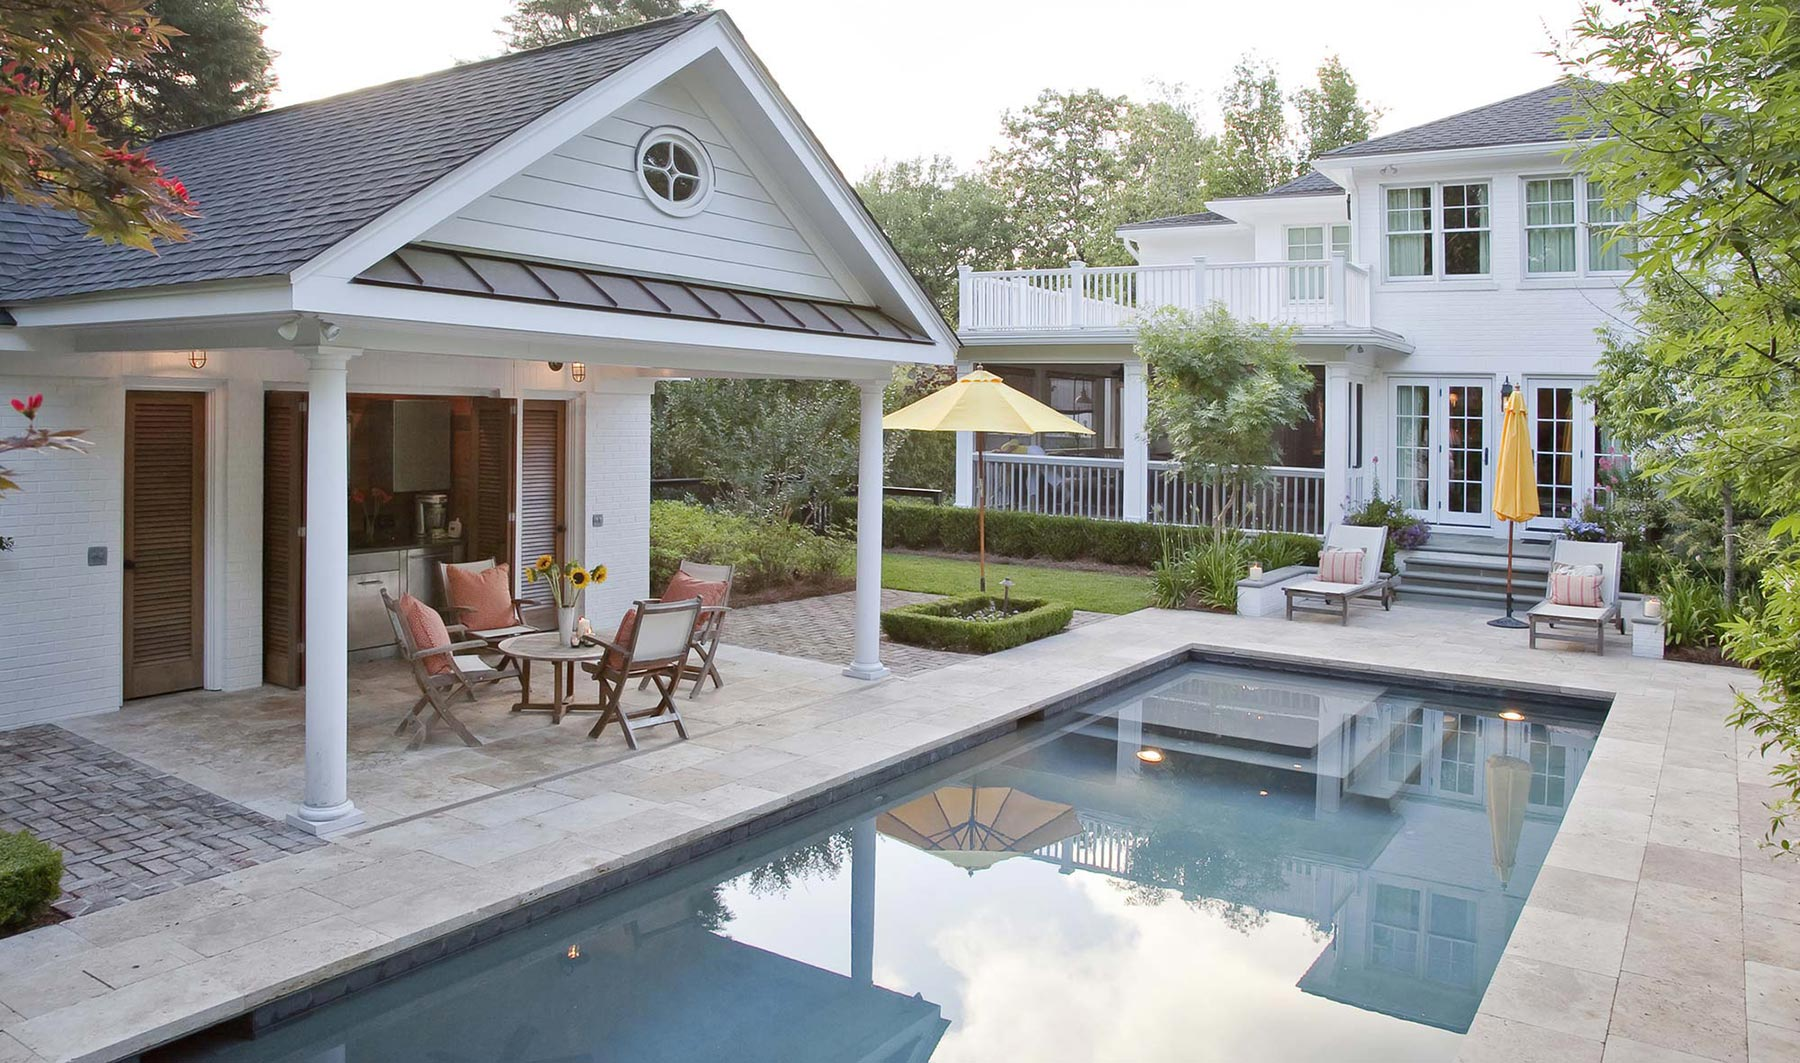 Outdoor Living Pool and Covered Outdoor Grill Space